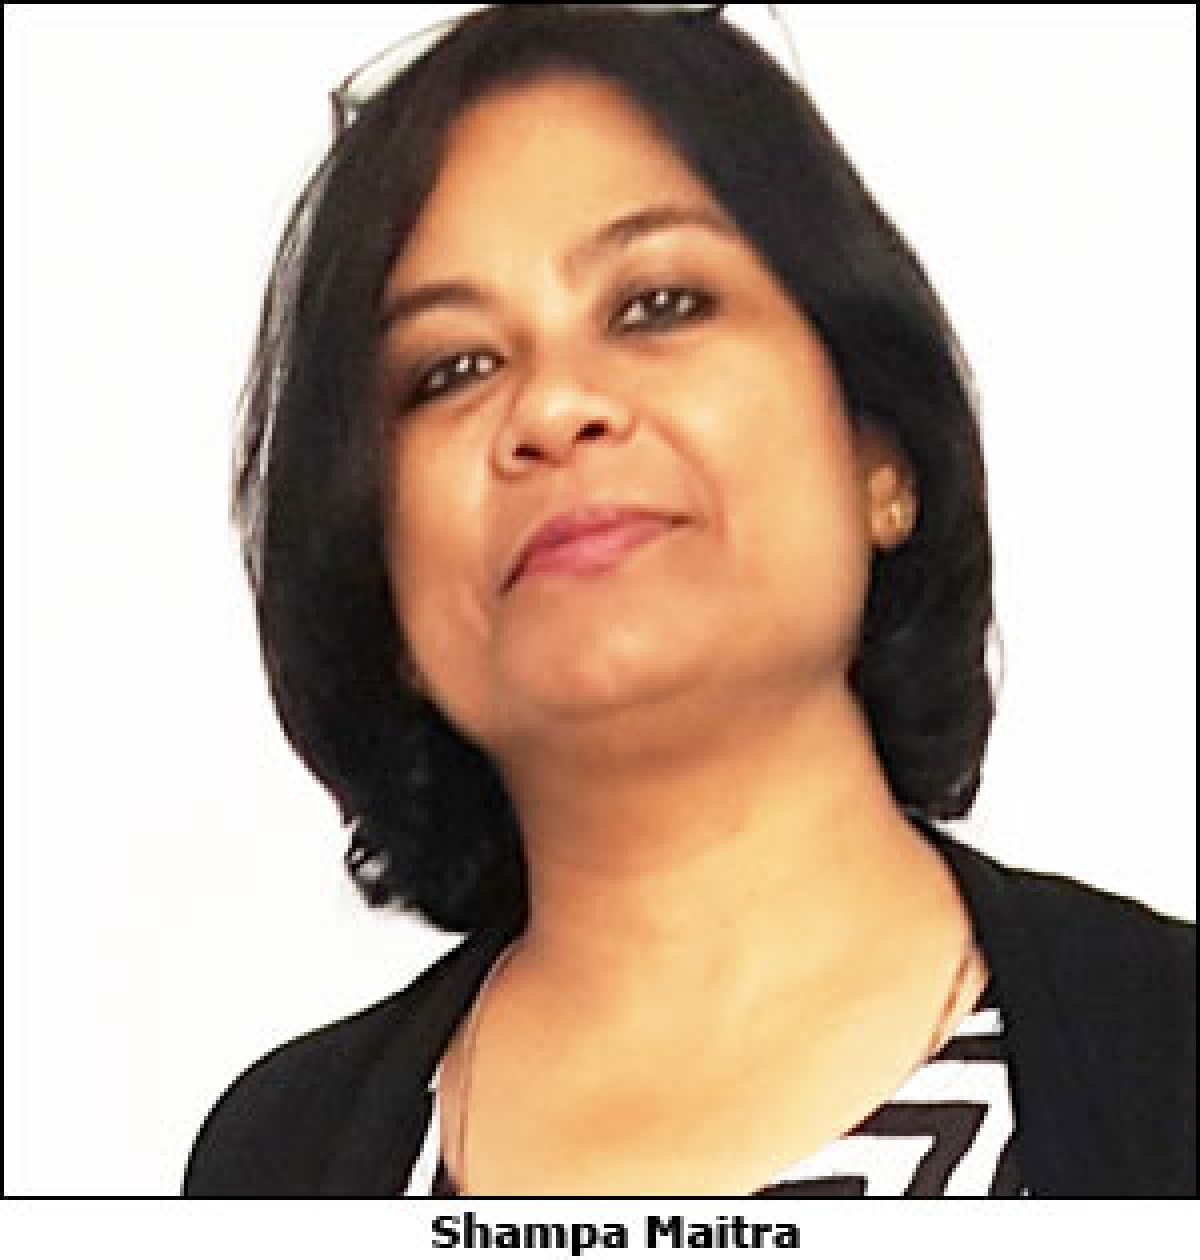 Shampa Maitra named branch head, Percept/H, Mumbai